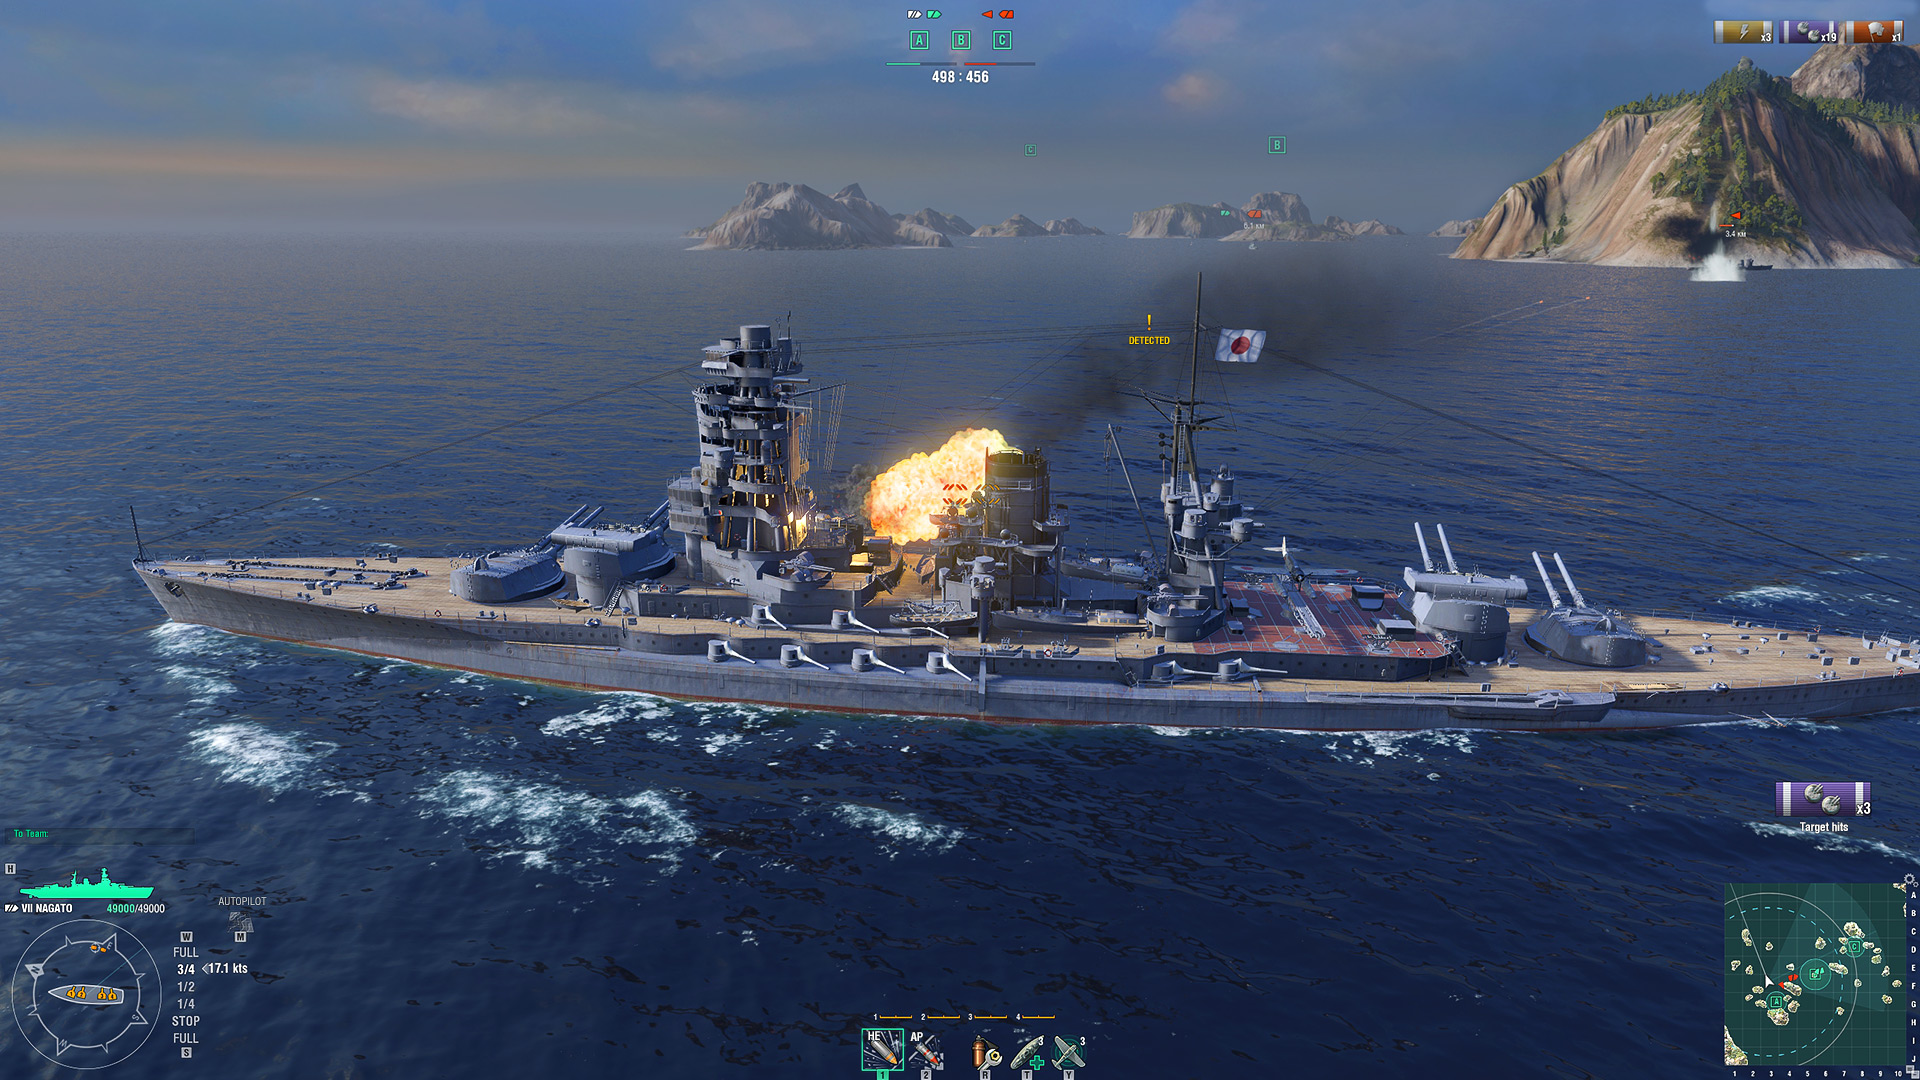 world of warships download issues